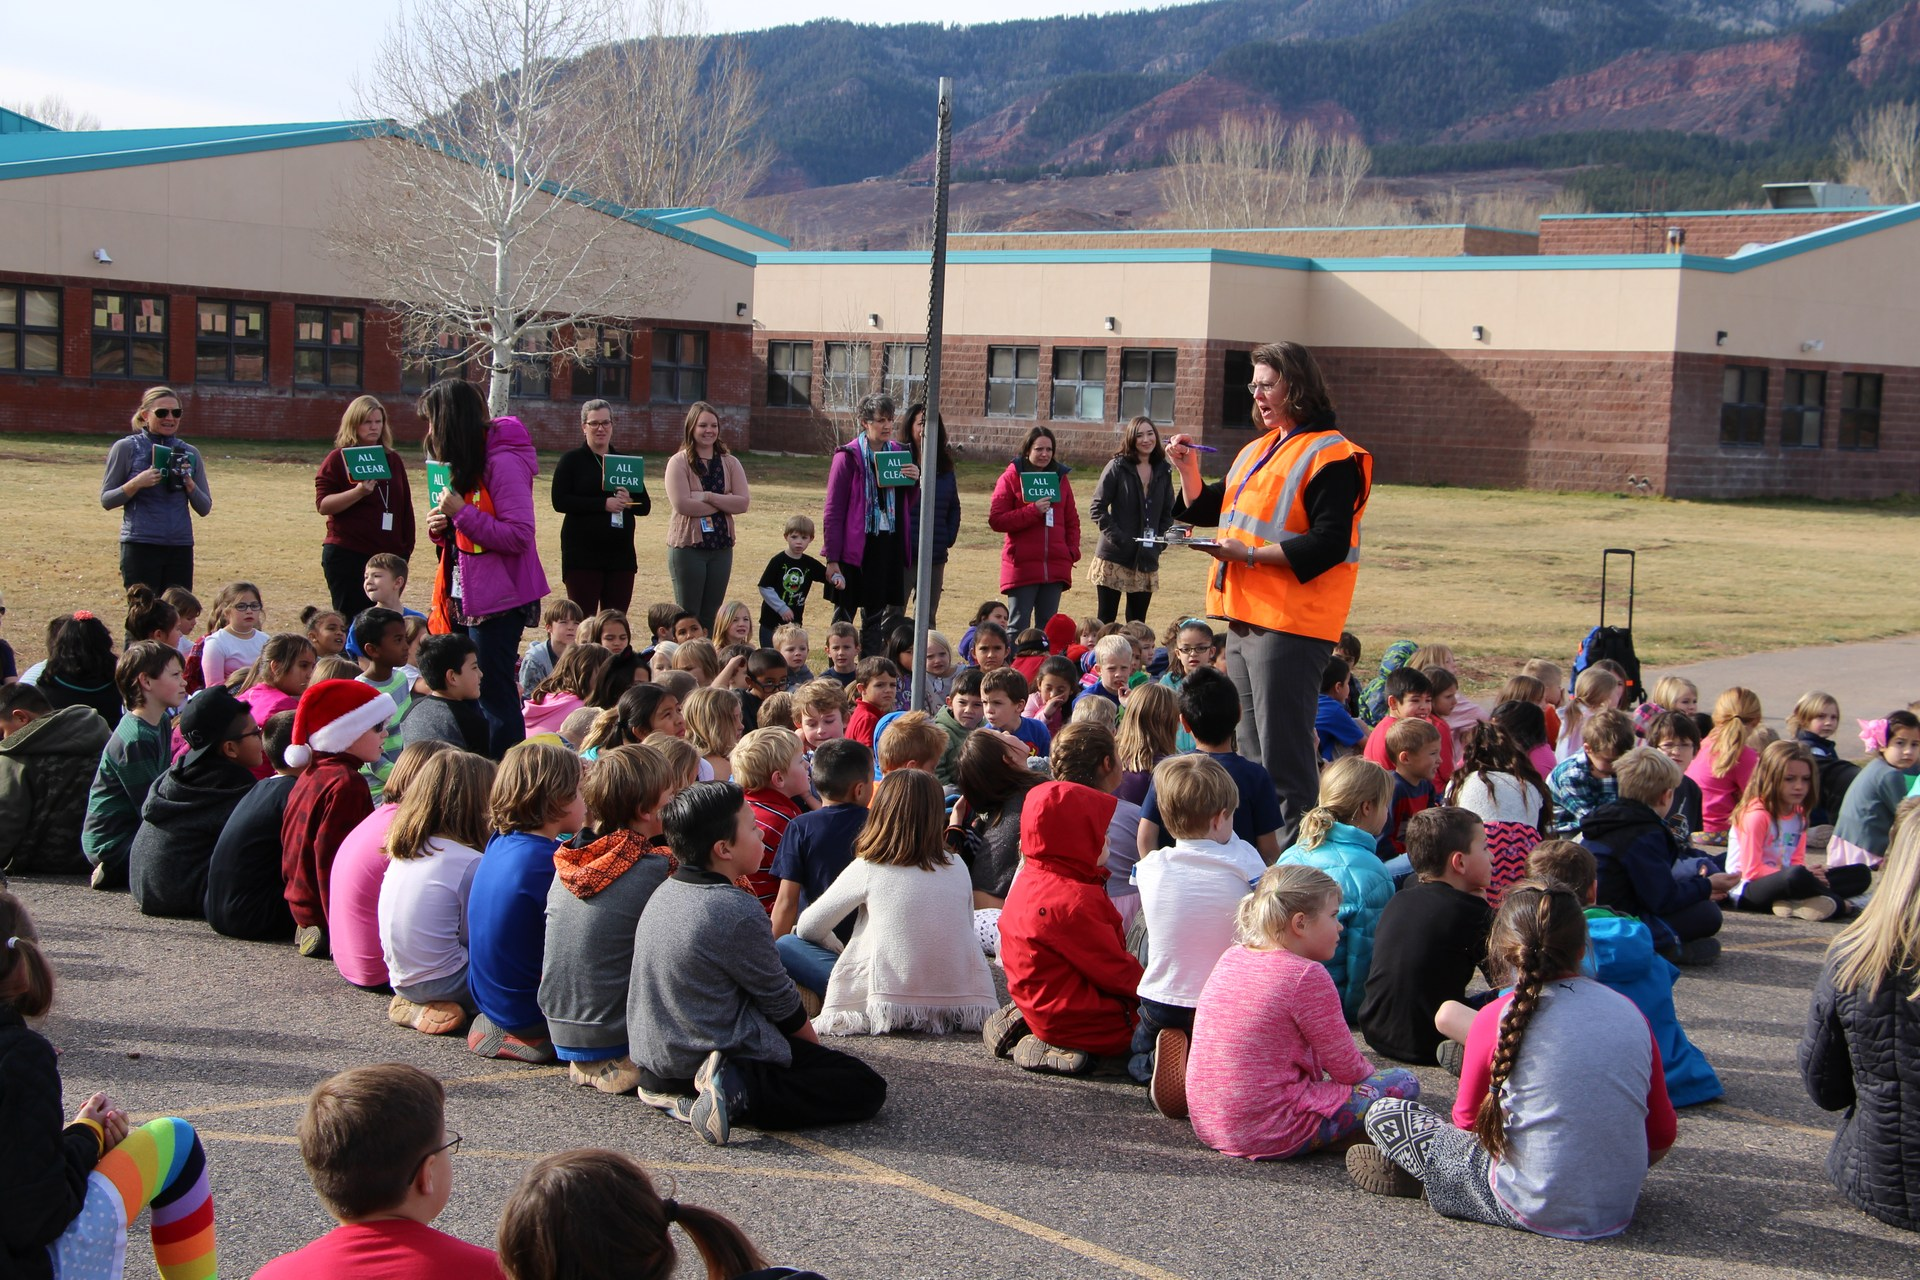 Image of students in evacuation drill at Animas Valley Elementary.